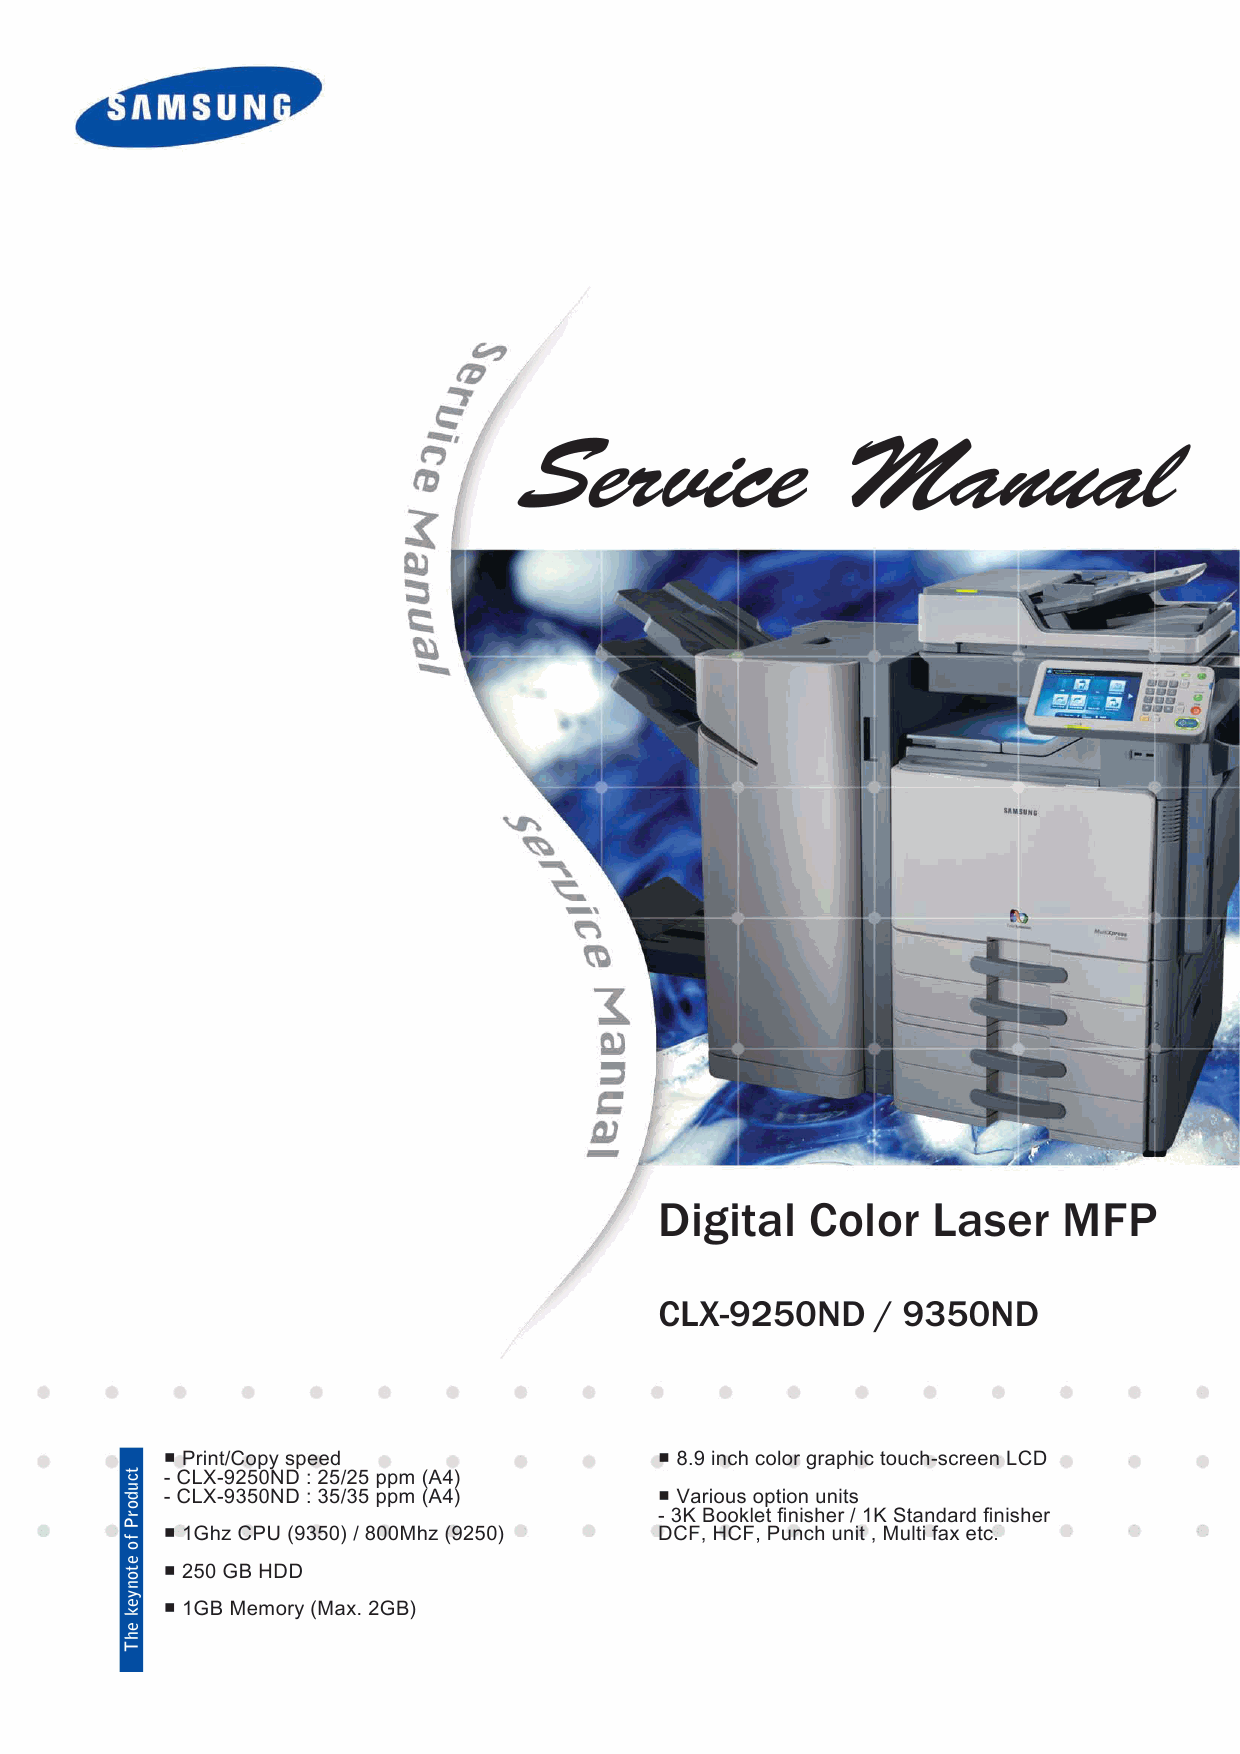 Samsung Digital-Color-Laser-MFP CLX-9250ND 9350ND Parts and Service Manual-1